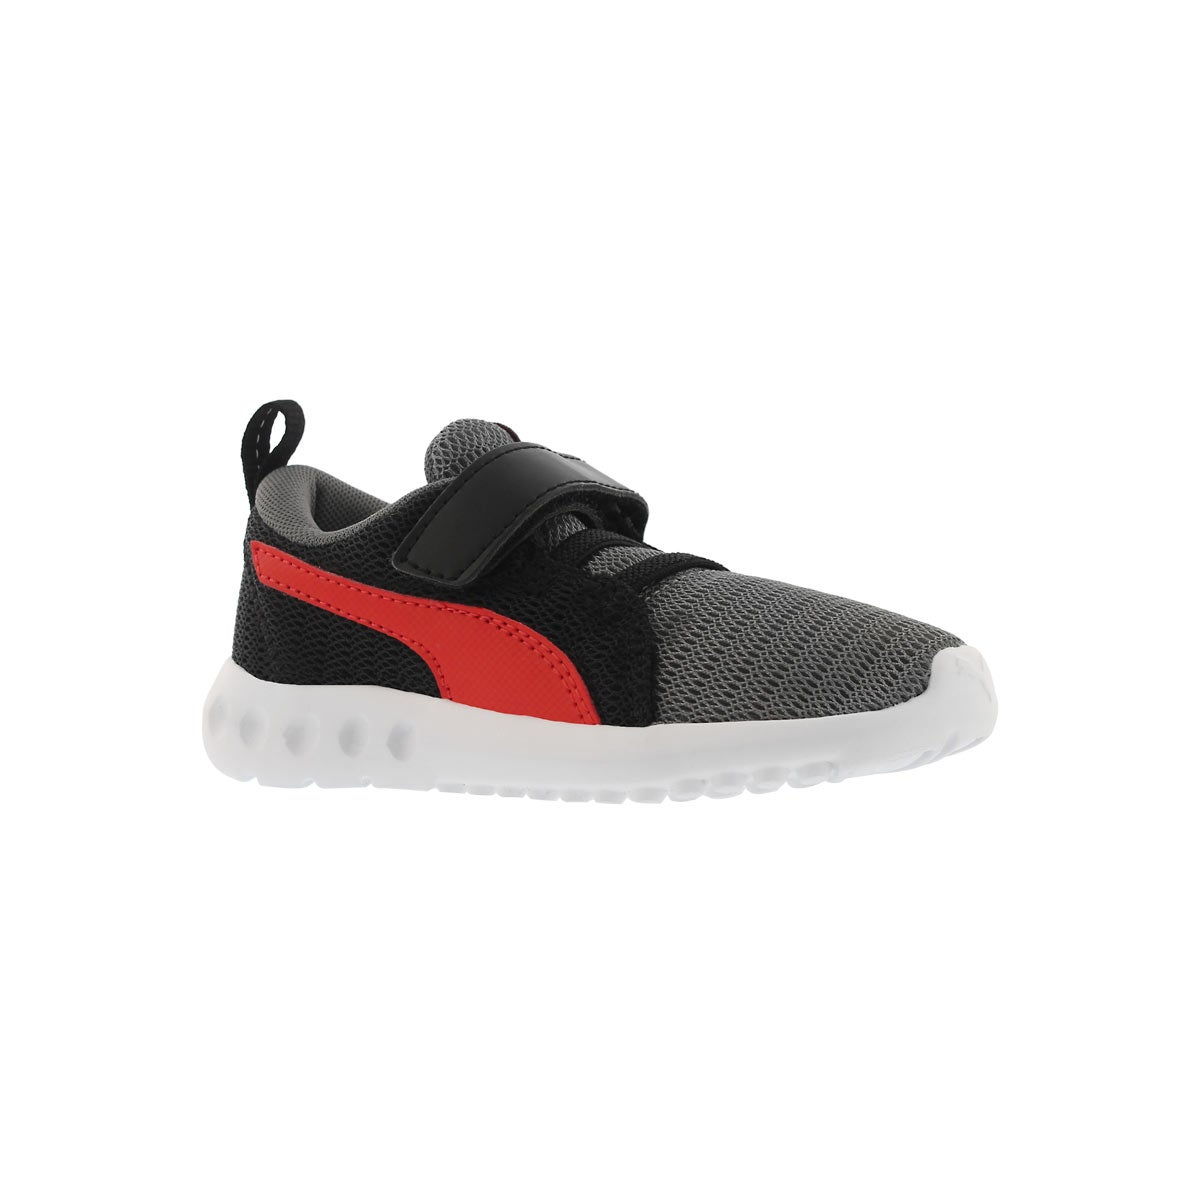 Infants' CARSON 2V grey/red sneakers